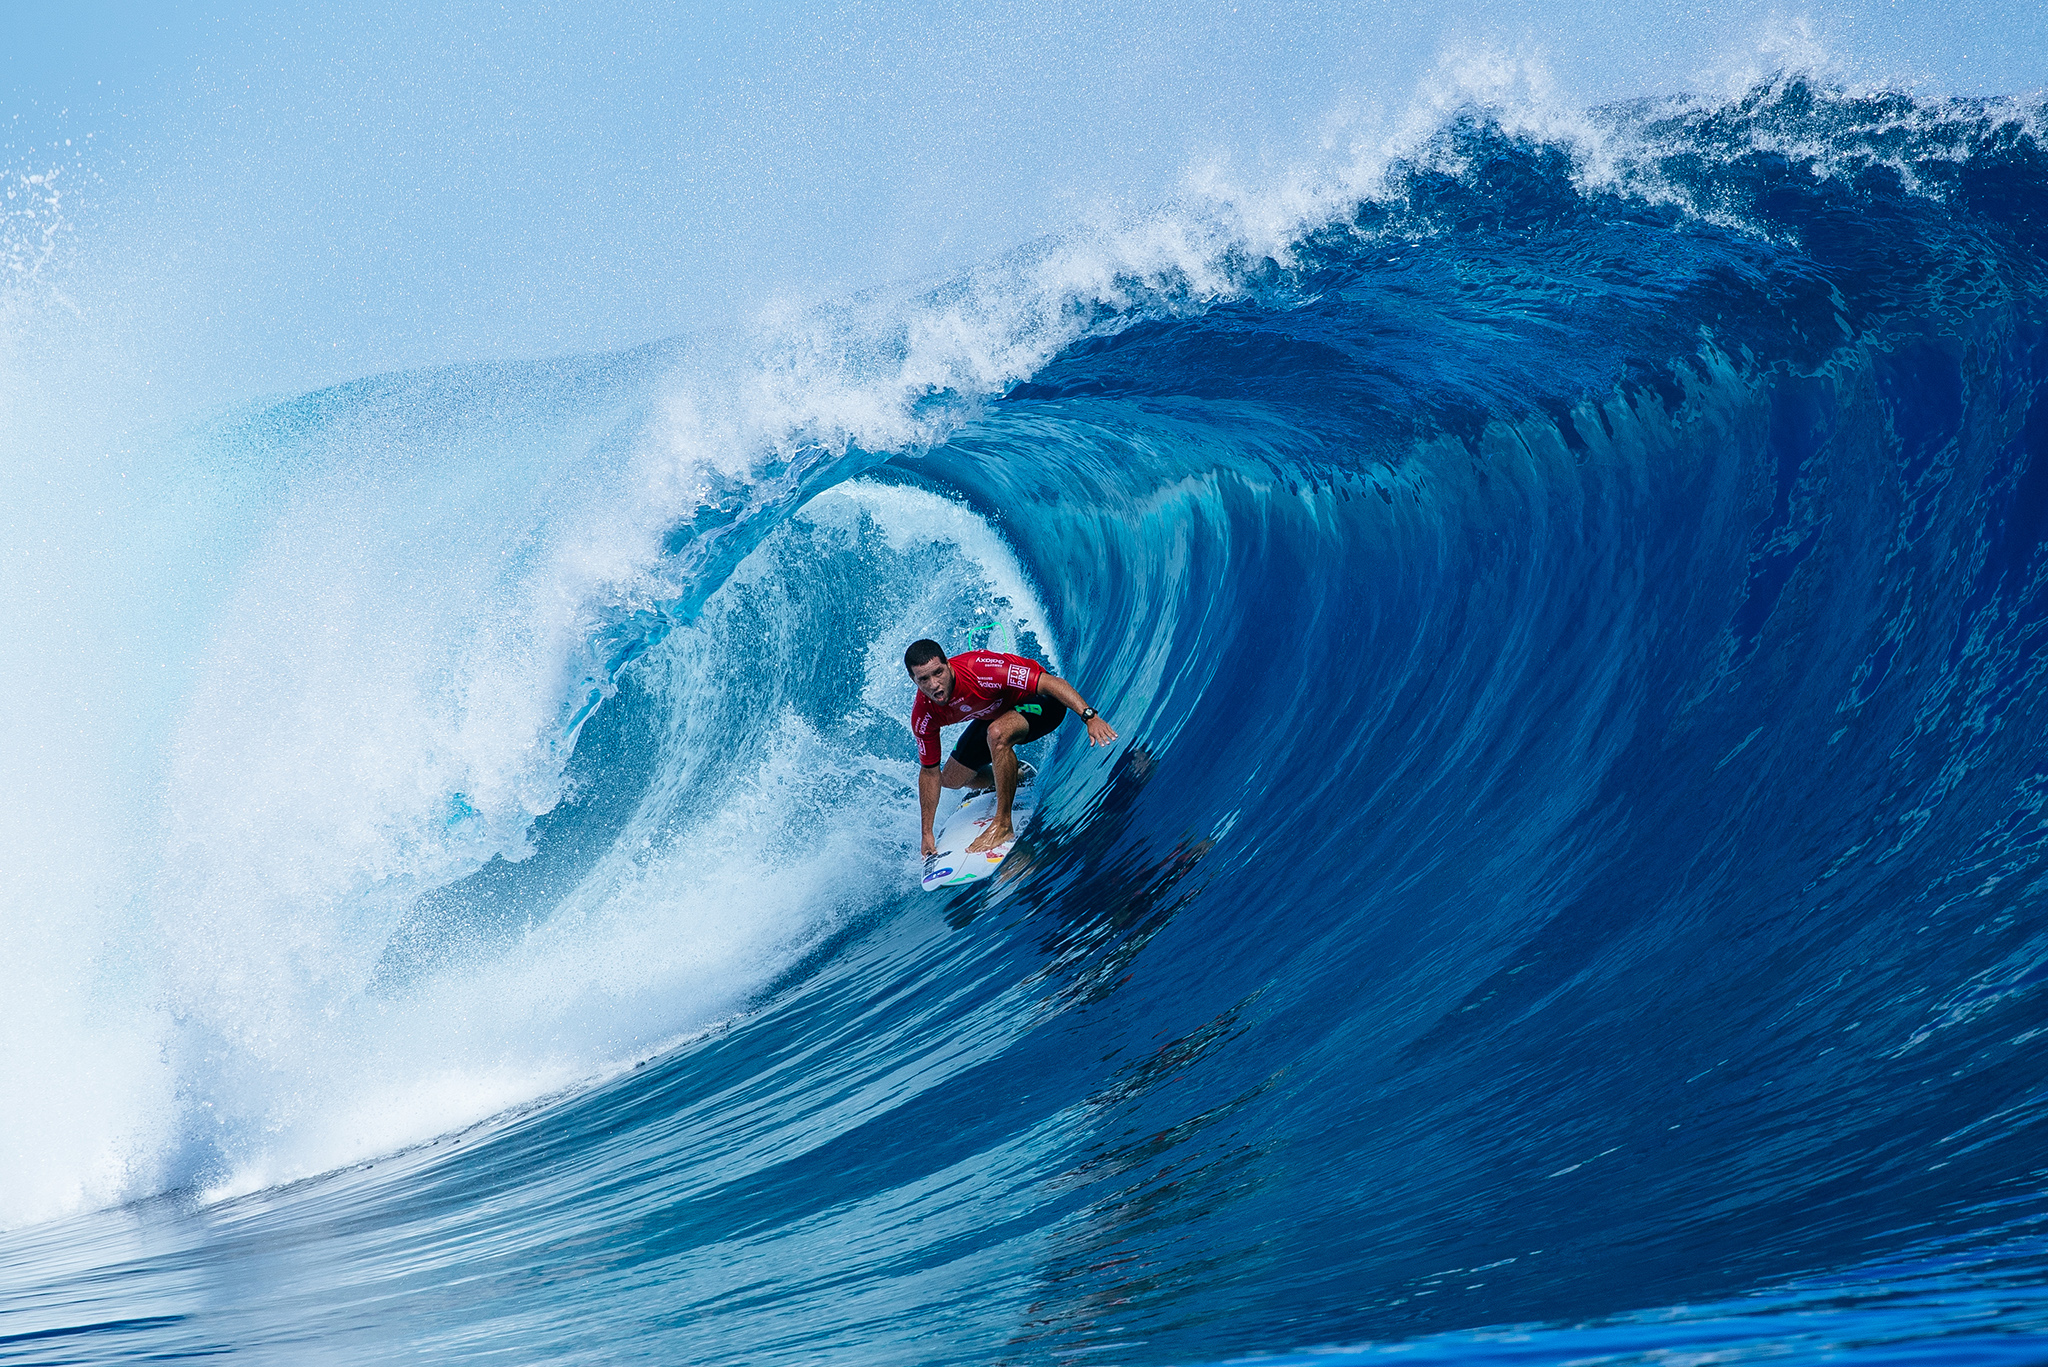 Adriano De Souza of BRasil (pictured) winning his in Round Three of the Fiji Pro at Cloudbreak, Tavarua on Wednesday June 15, 2016. PHOTO: ©WSL/ Sloane SOCIAL: @edsloanephoto @wsl This image is the copyright of the World Surf League and is provided royalty free for editorial use only, in all media now known or hereafter created. No commercial rights granted. Sale or license of the images is prohibited. This image is a factually accurate rendering of what it depicts and has not been modified or augmented except for standard cropping and toning. ALL RIGHTS RESERVED.